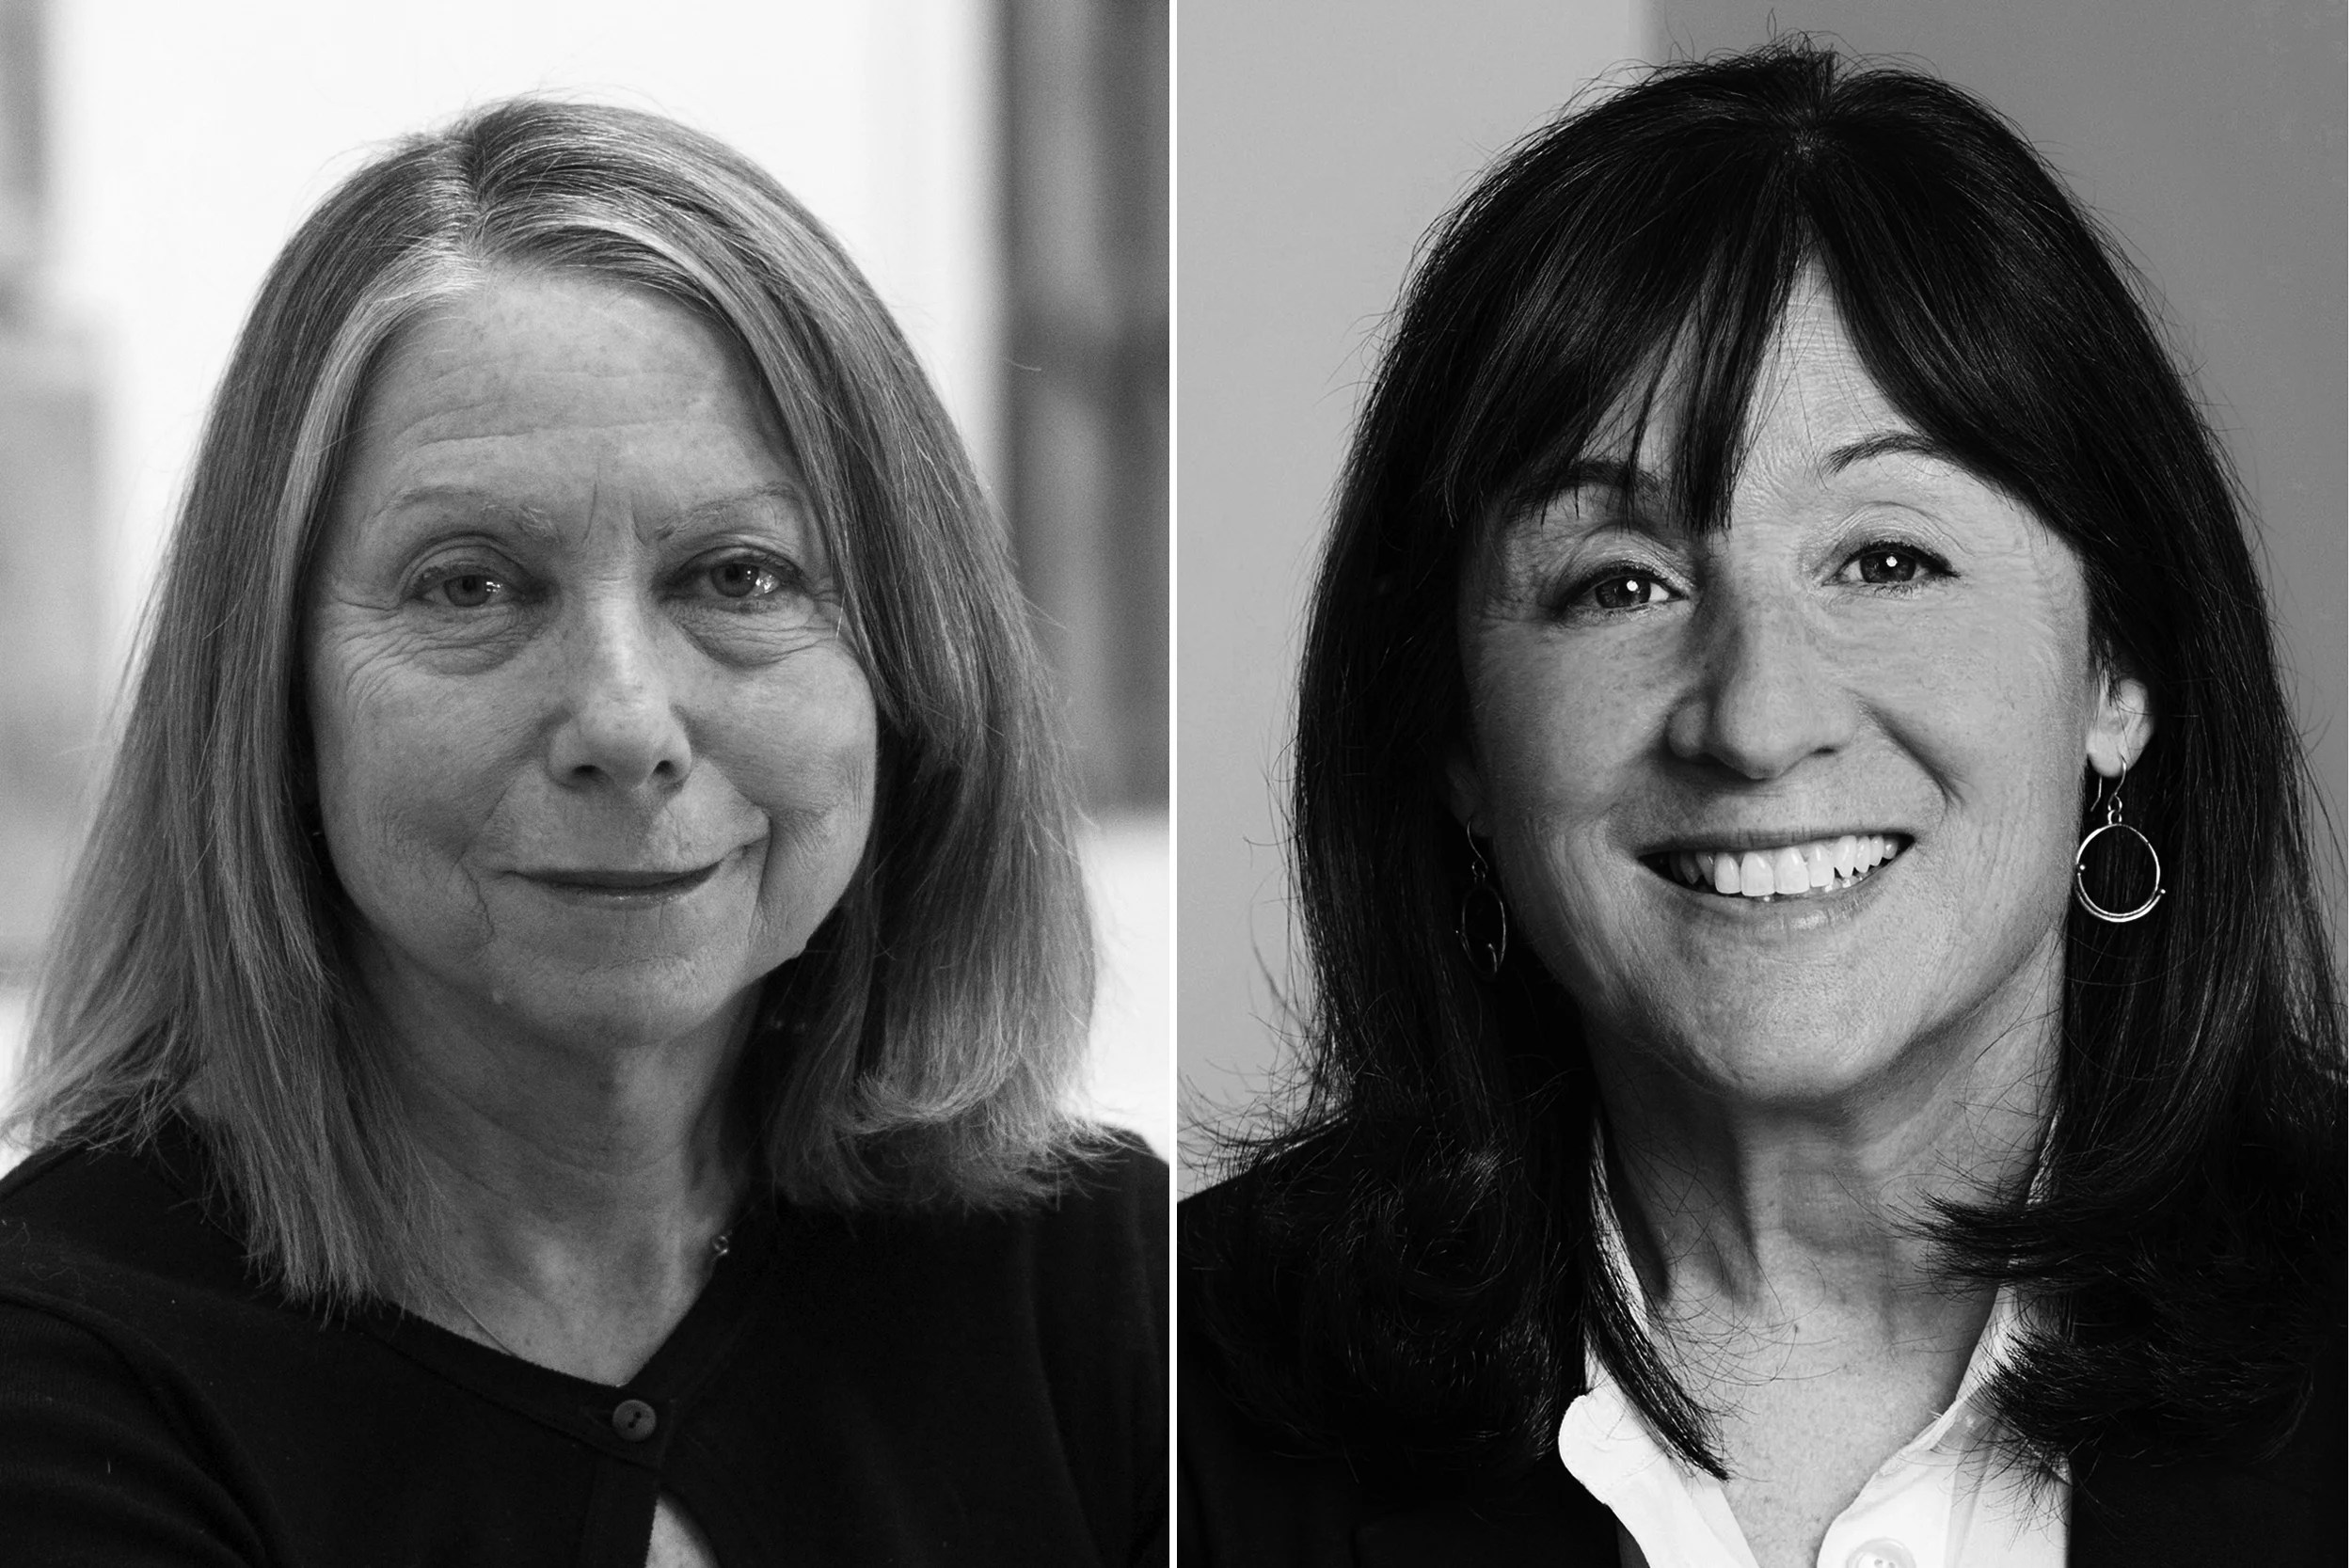 10 Fast Facts on Jill Abramson, the First Female Executive Editor of The New York Times photo